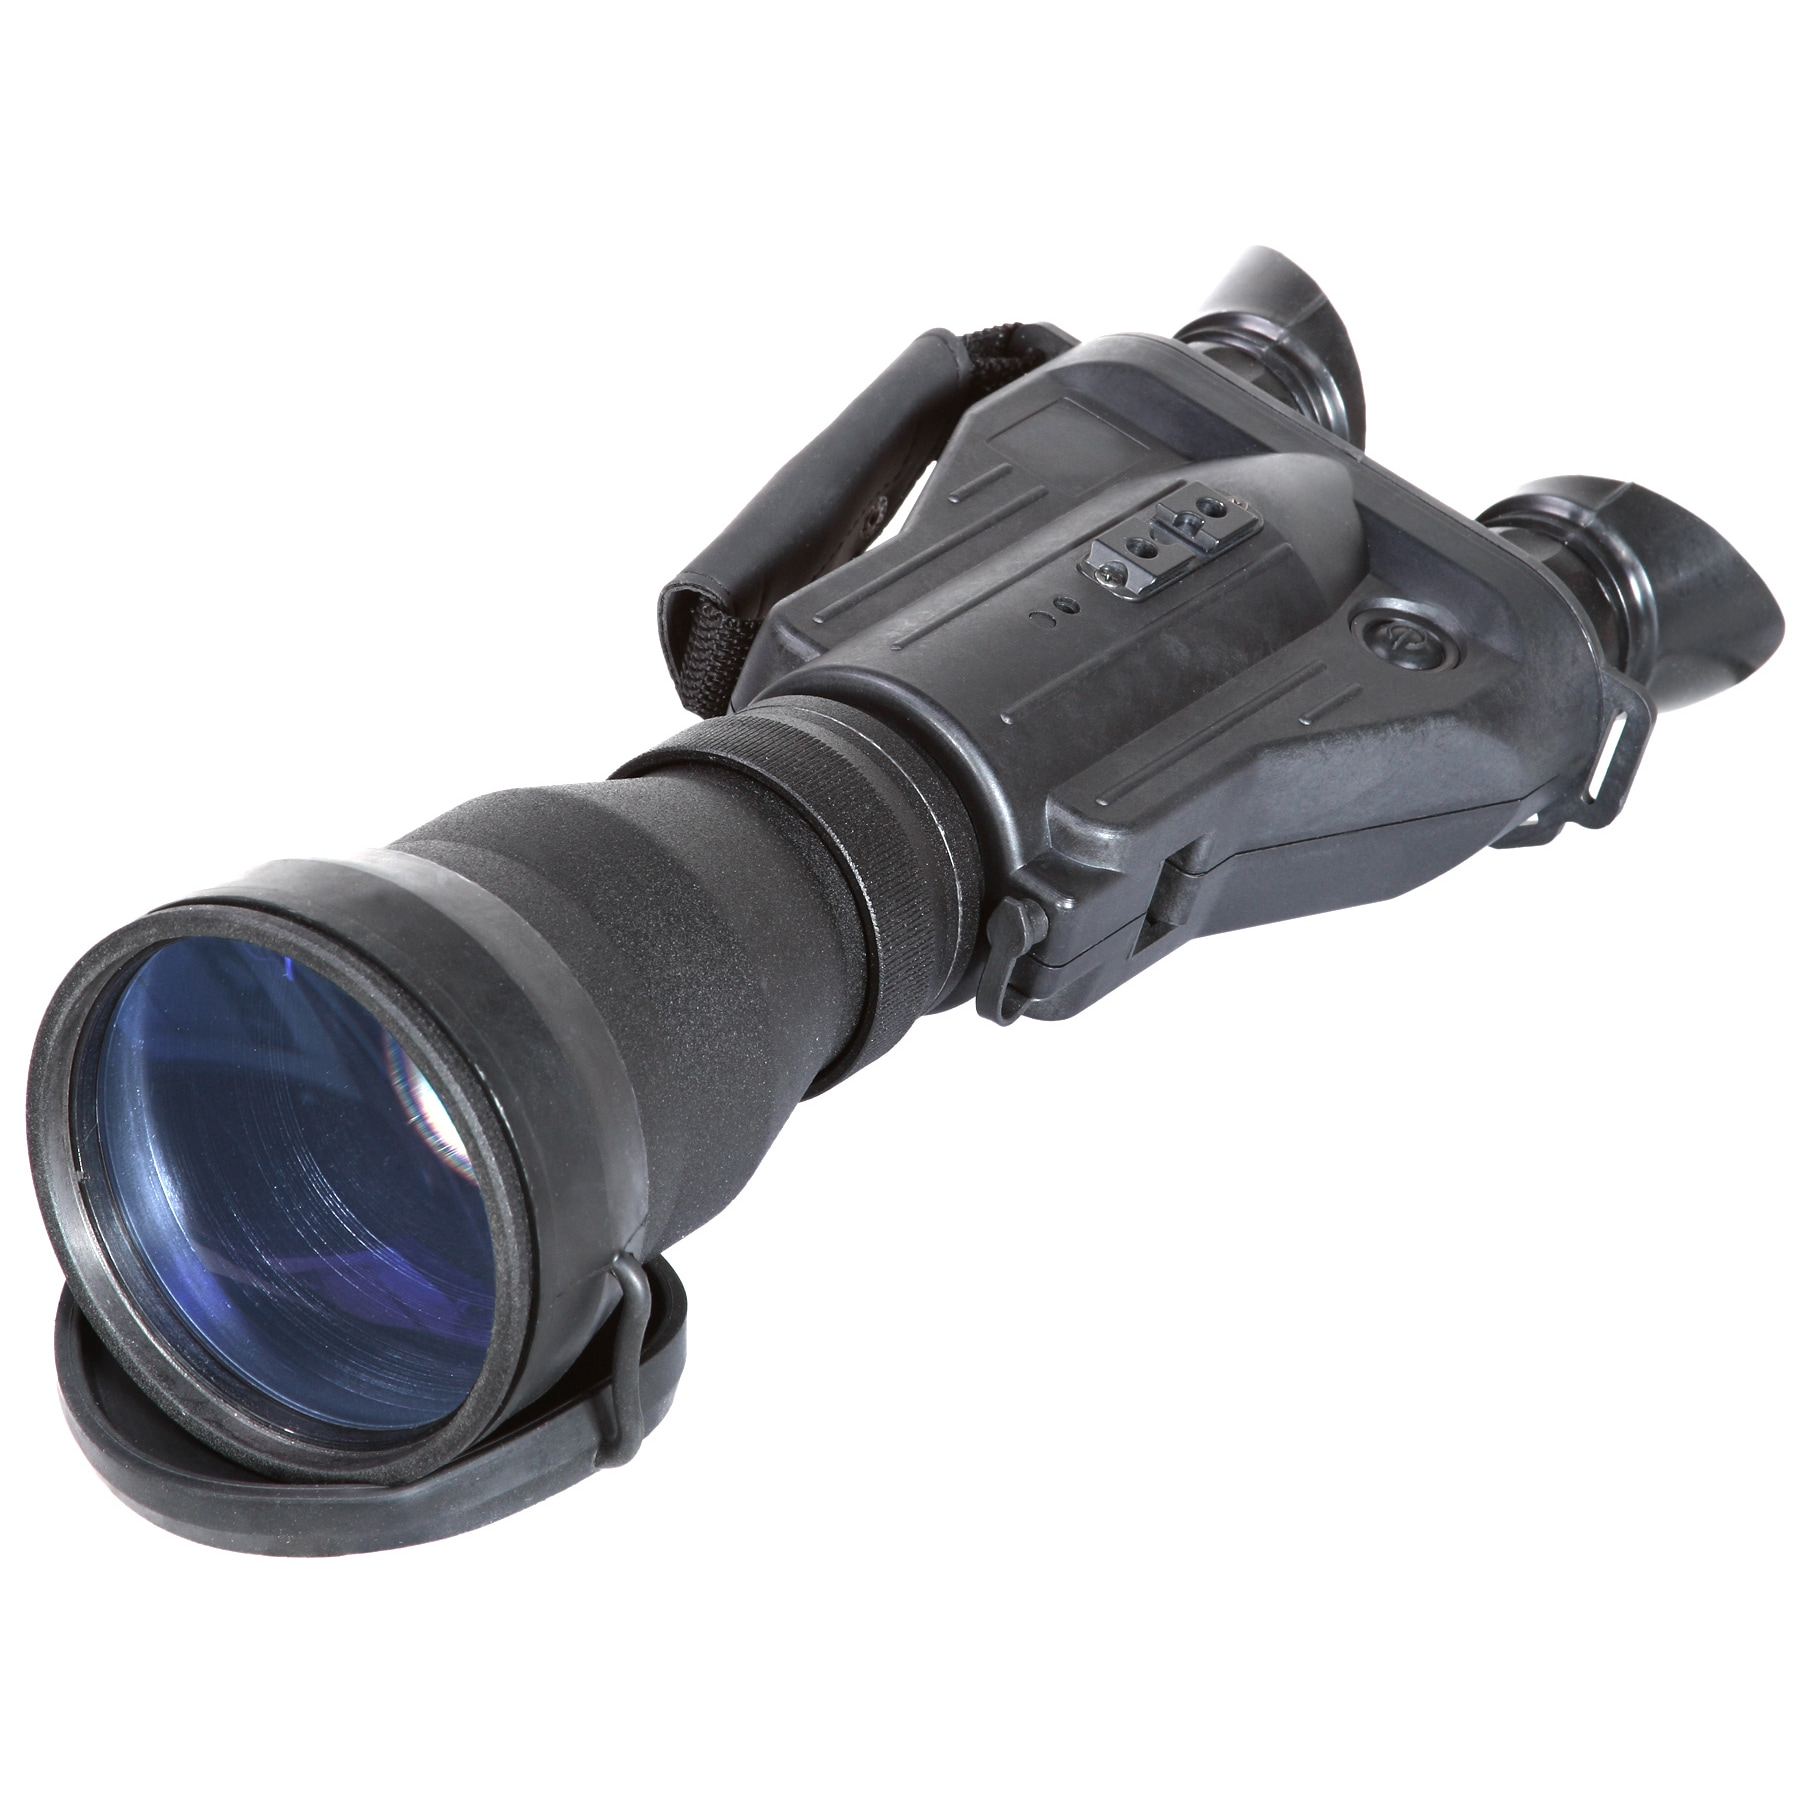 Click here to buy Armasight Discovery8x-HD Night Vision Binocular 8x High Definition Generation 2+, 51-72 lp mm by Overstock.